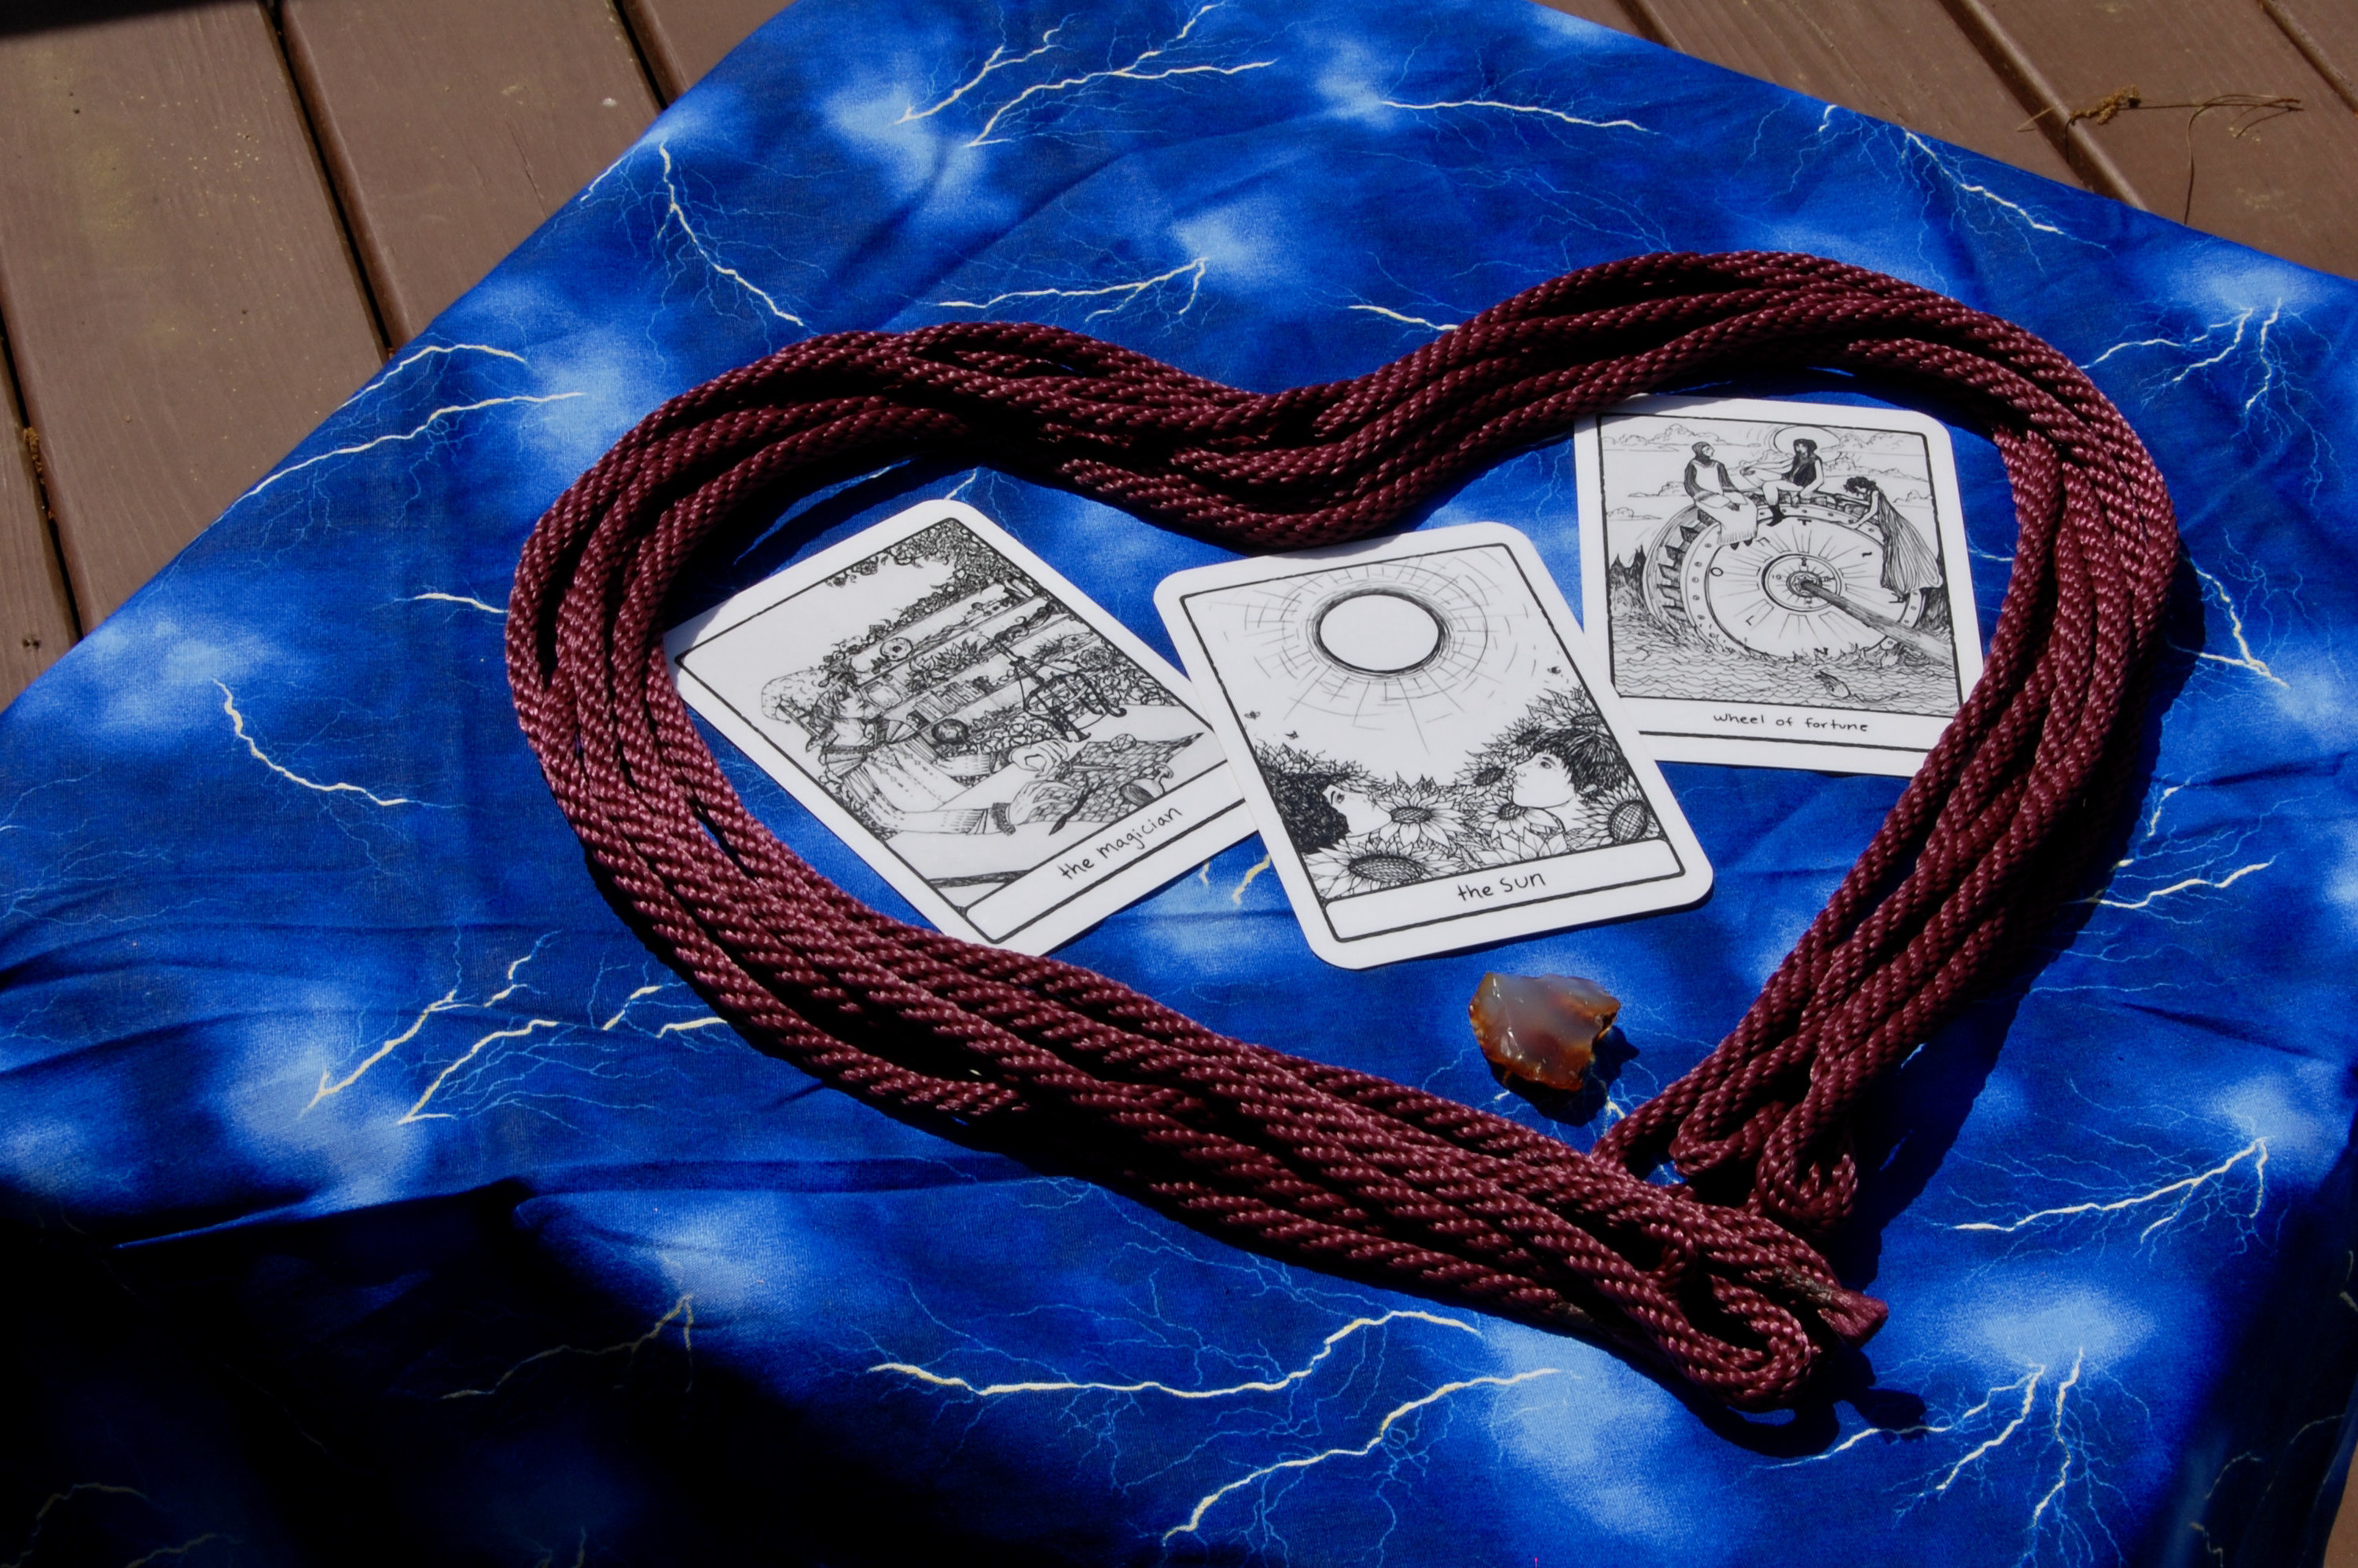 Photo of a rope in a heart shape with three tarot cards (the Magician, the Sun, and Wheel of Fortune), plus a small crystal